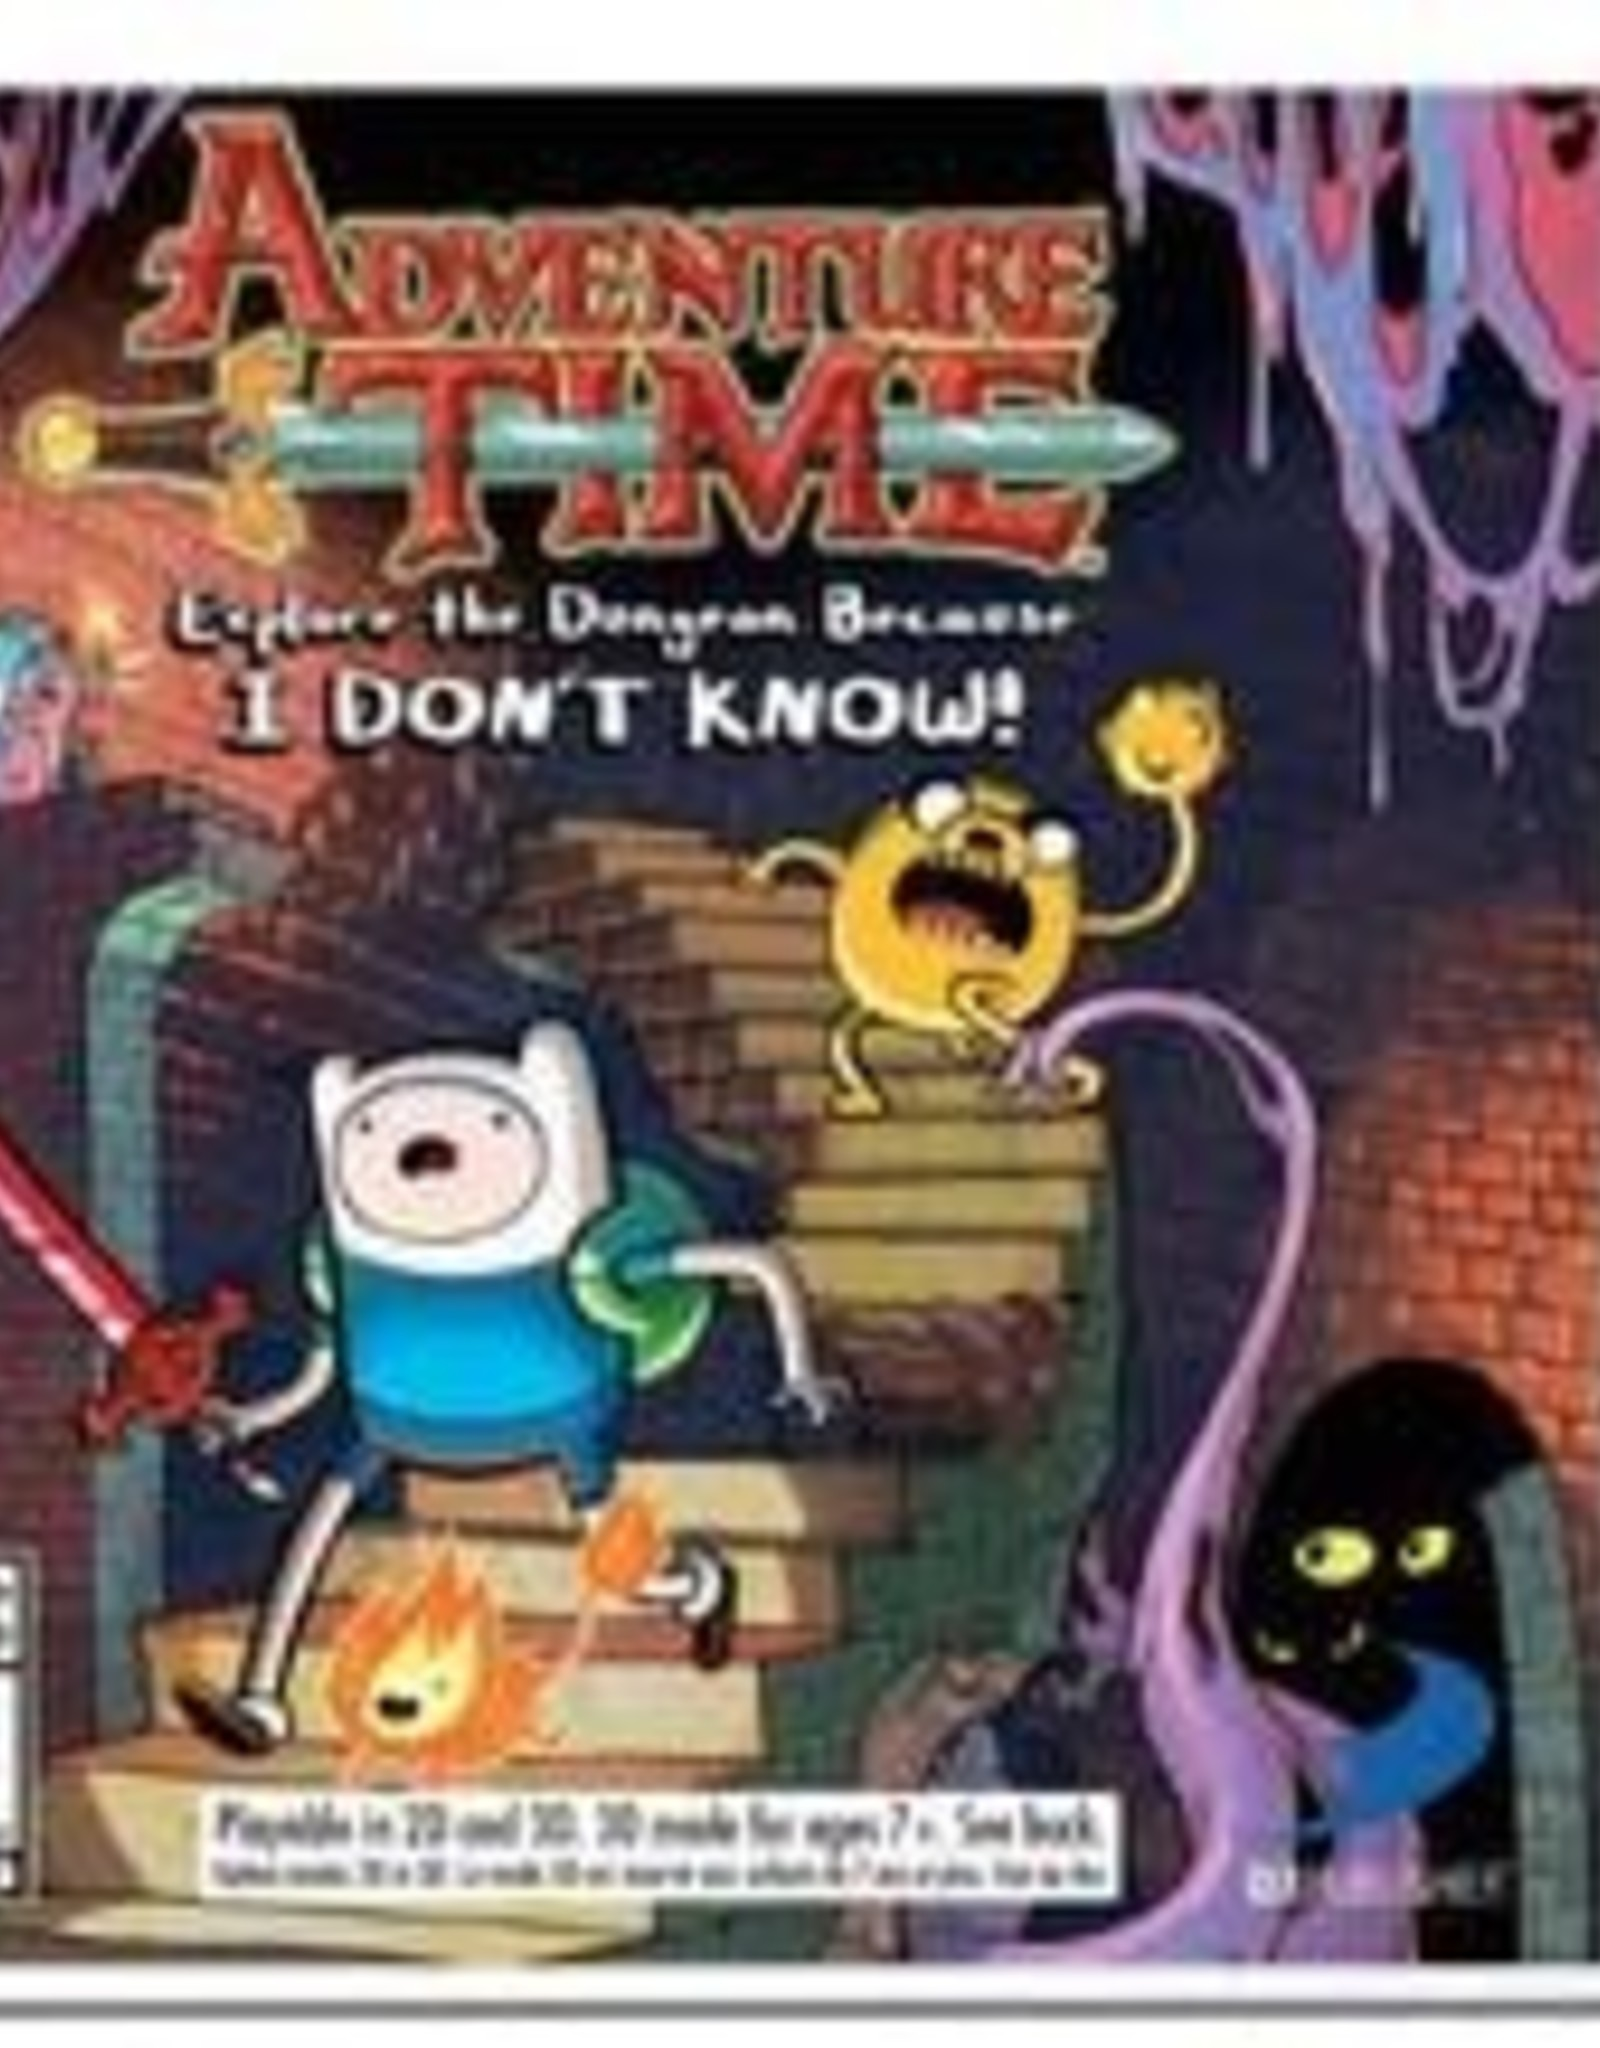 Nintendo 3DS Adventure Time: Explore the Dungeon Because I Don't Know (CiB)